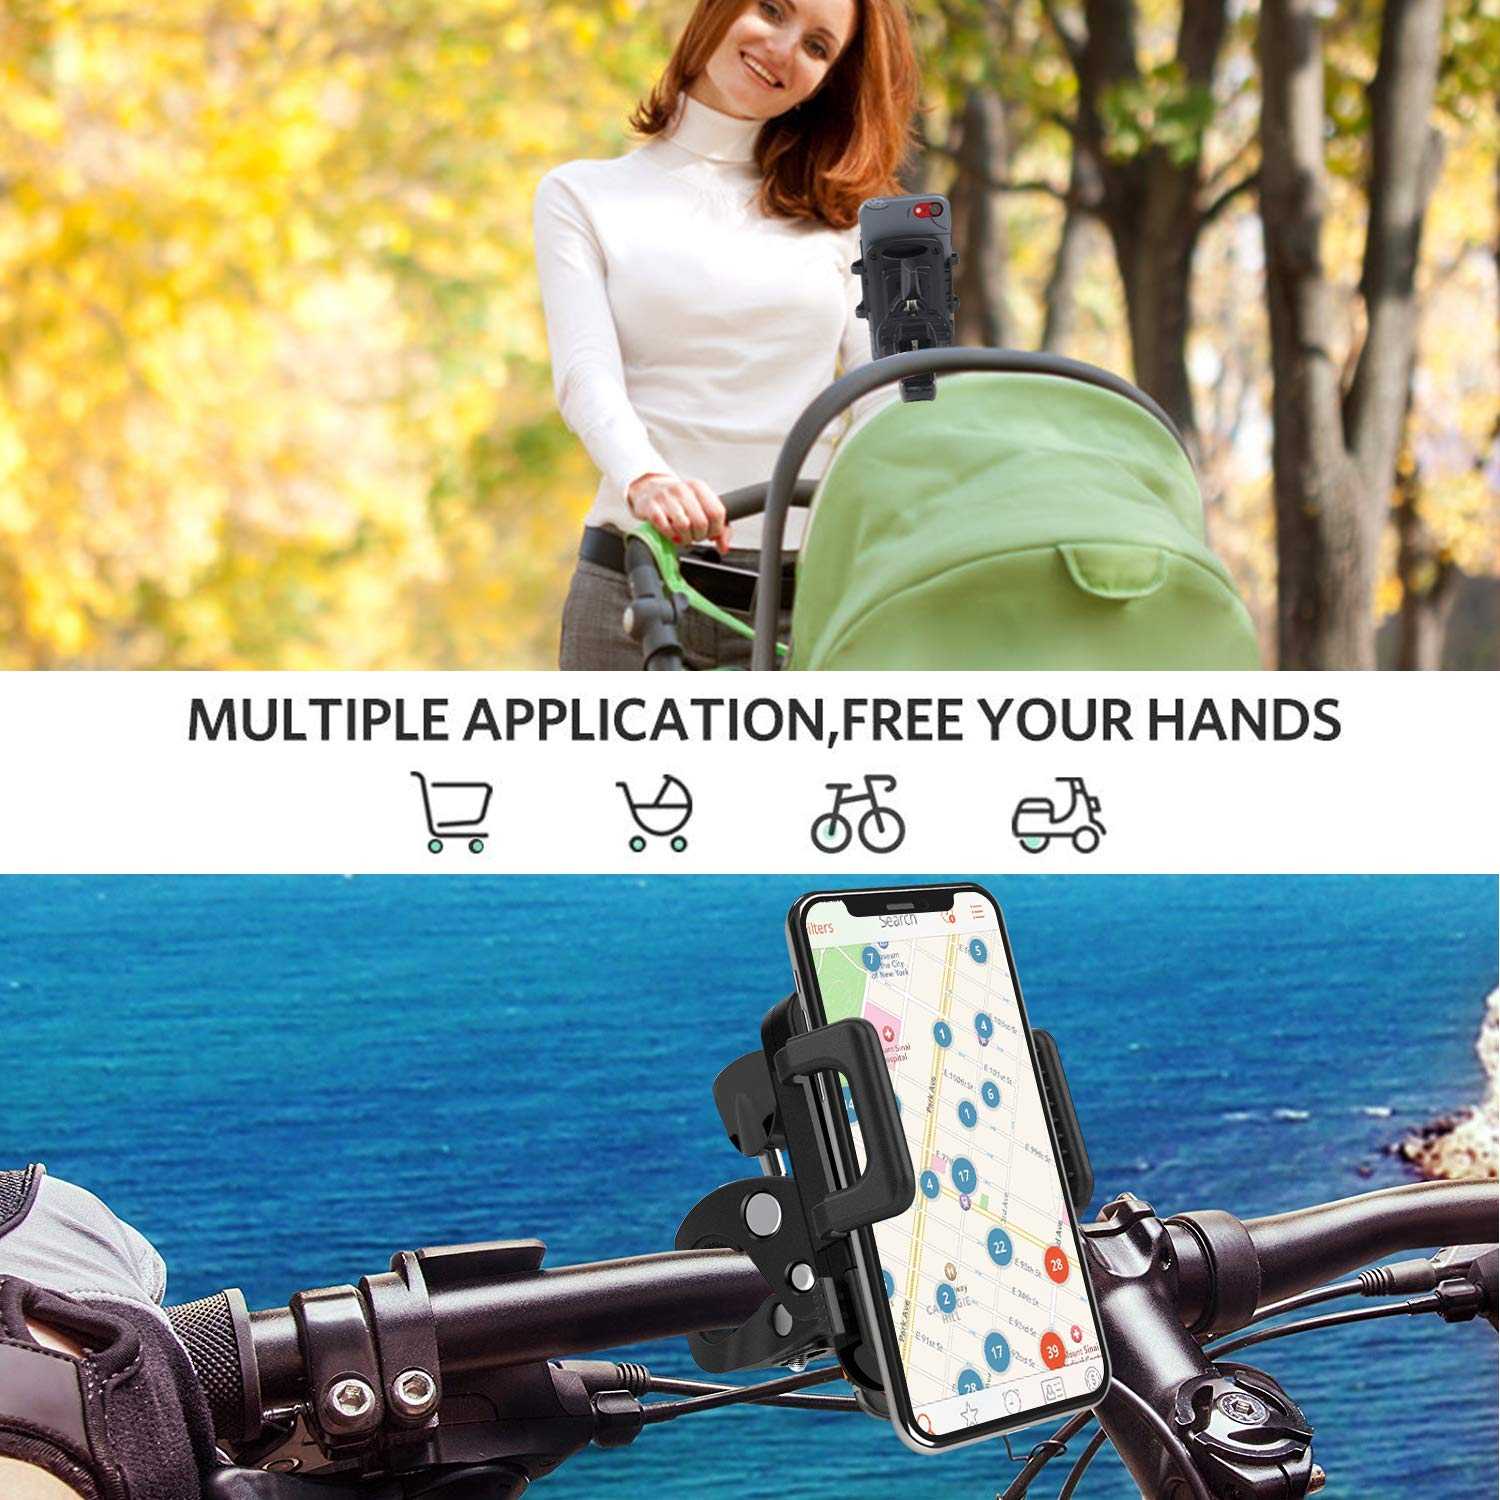 Eocean 360/° Rotatable Adjustable Silicone Phone Holder for Bike Bycicle Universal Bike Cell Phone Mount for Ring Light Tripod Compatible with iPhone Xs//Xr//Xs Max//X//8//8Plus//7//Galaxy Note 9//S9//Huawei